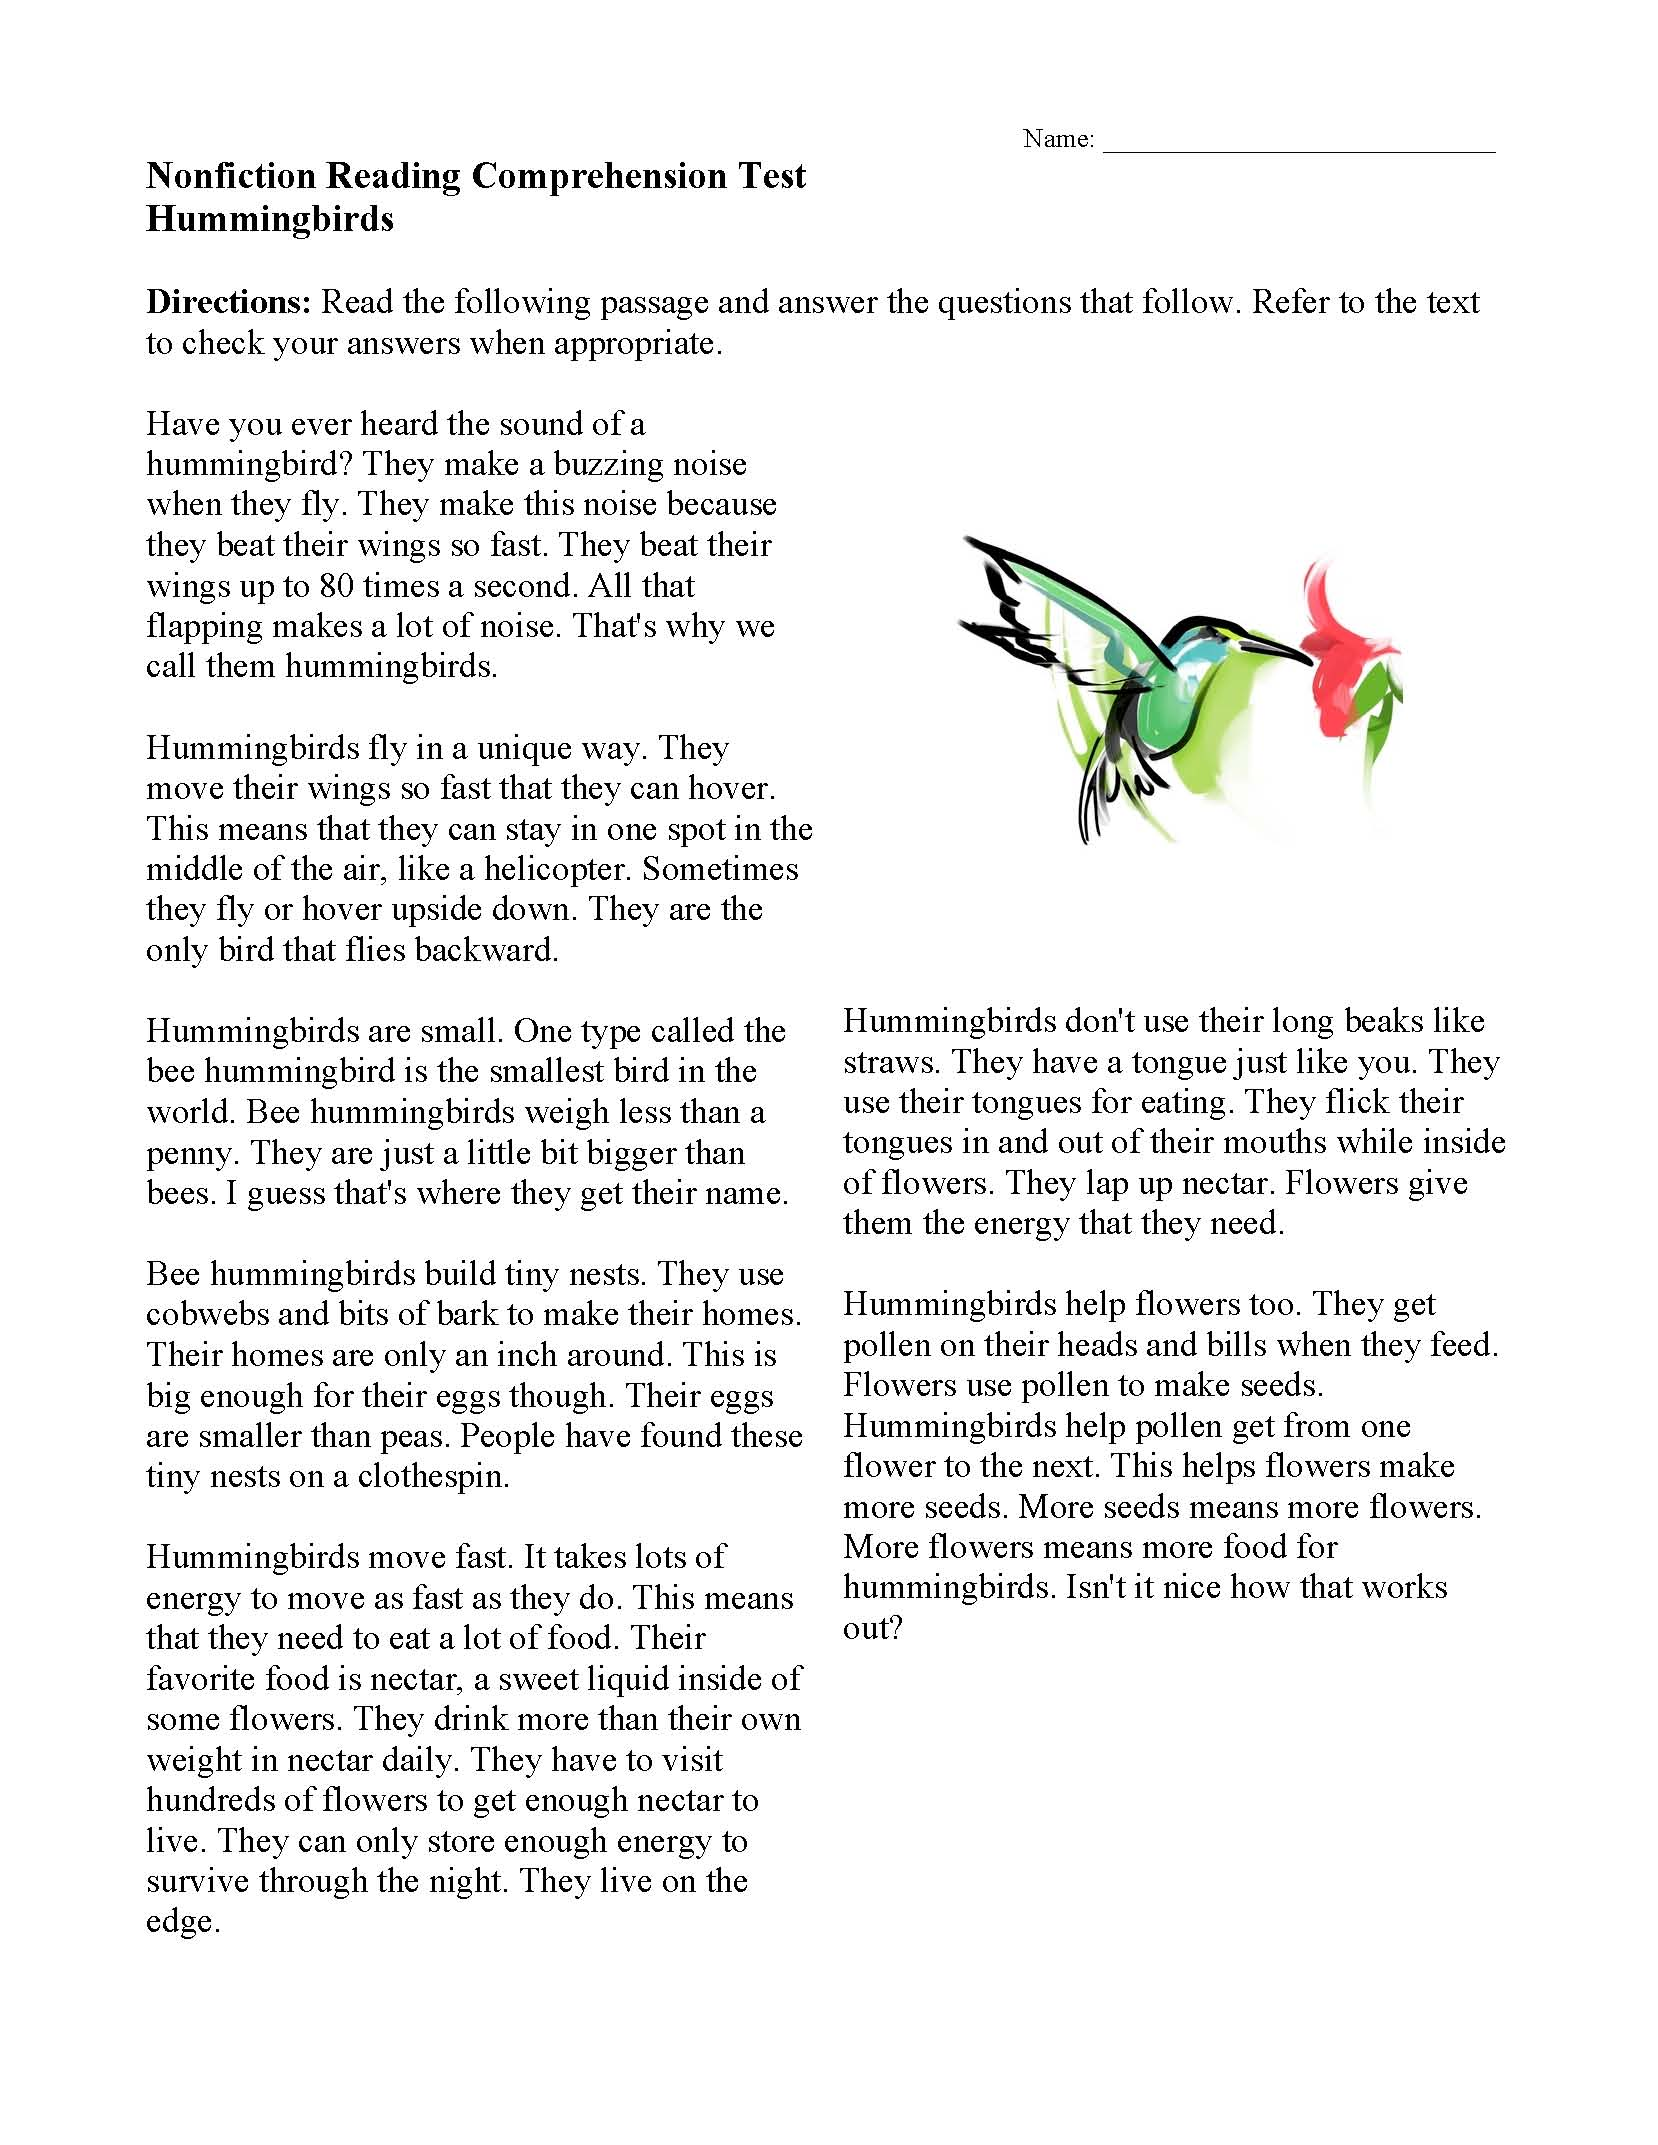 This is a preview image of Hummingbirds. Click on it to enlarge it or view the source file.